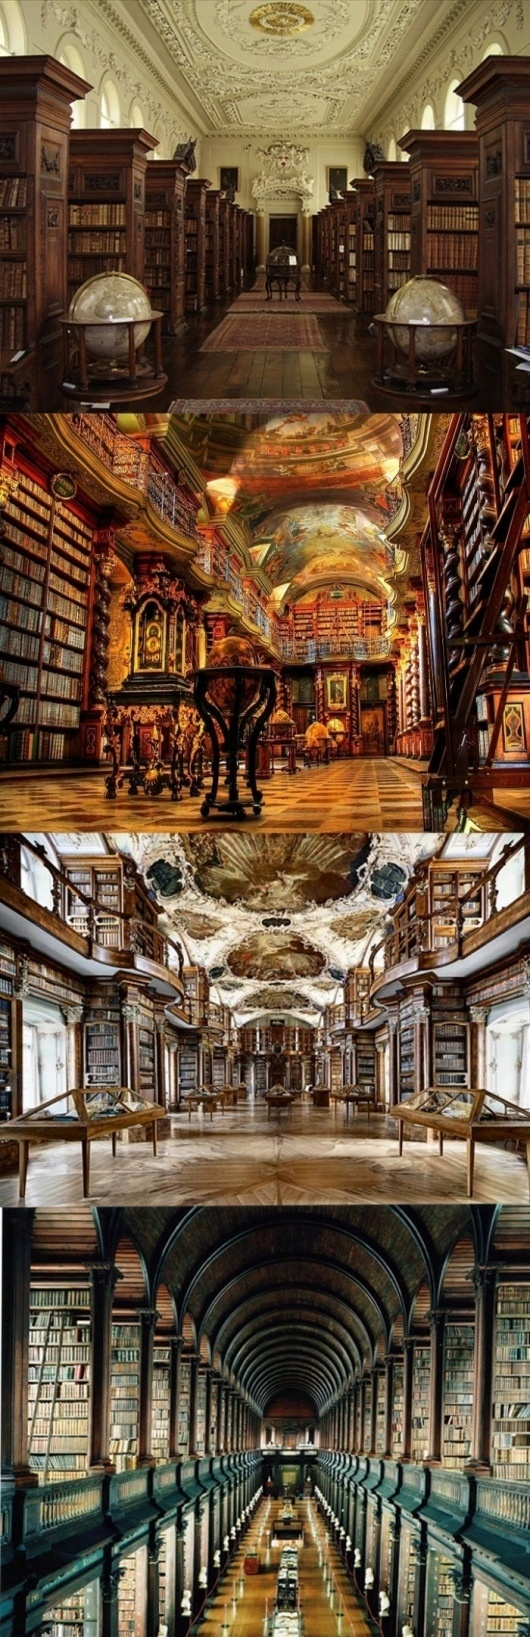 Librarys: Books, Dreams Libraries, Dreams Houses, Favorite Places, Awesome Libraries, Around The Worlds, Old Libraries, Beautiful Libraries, Amazing Libraries